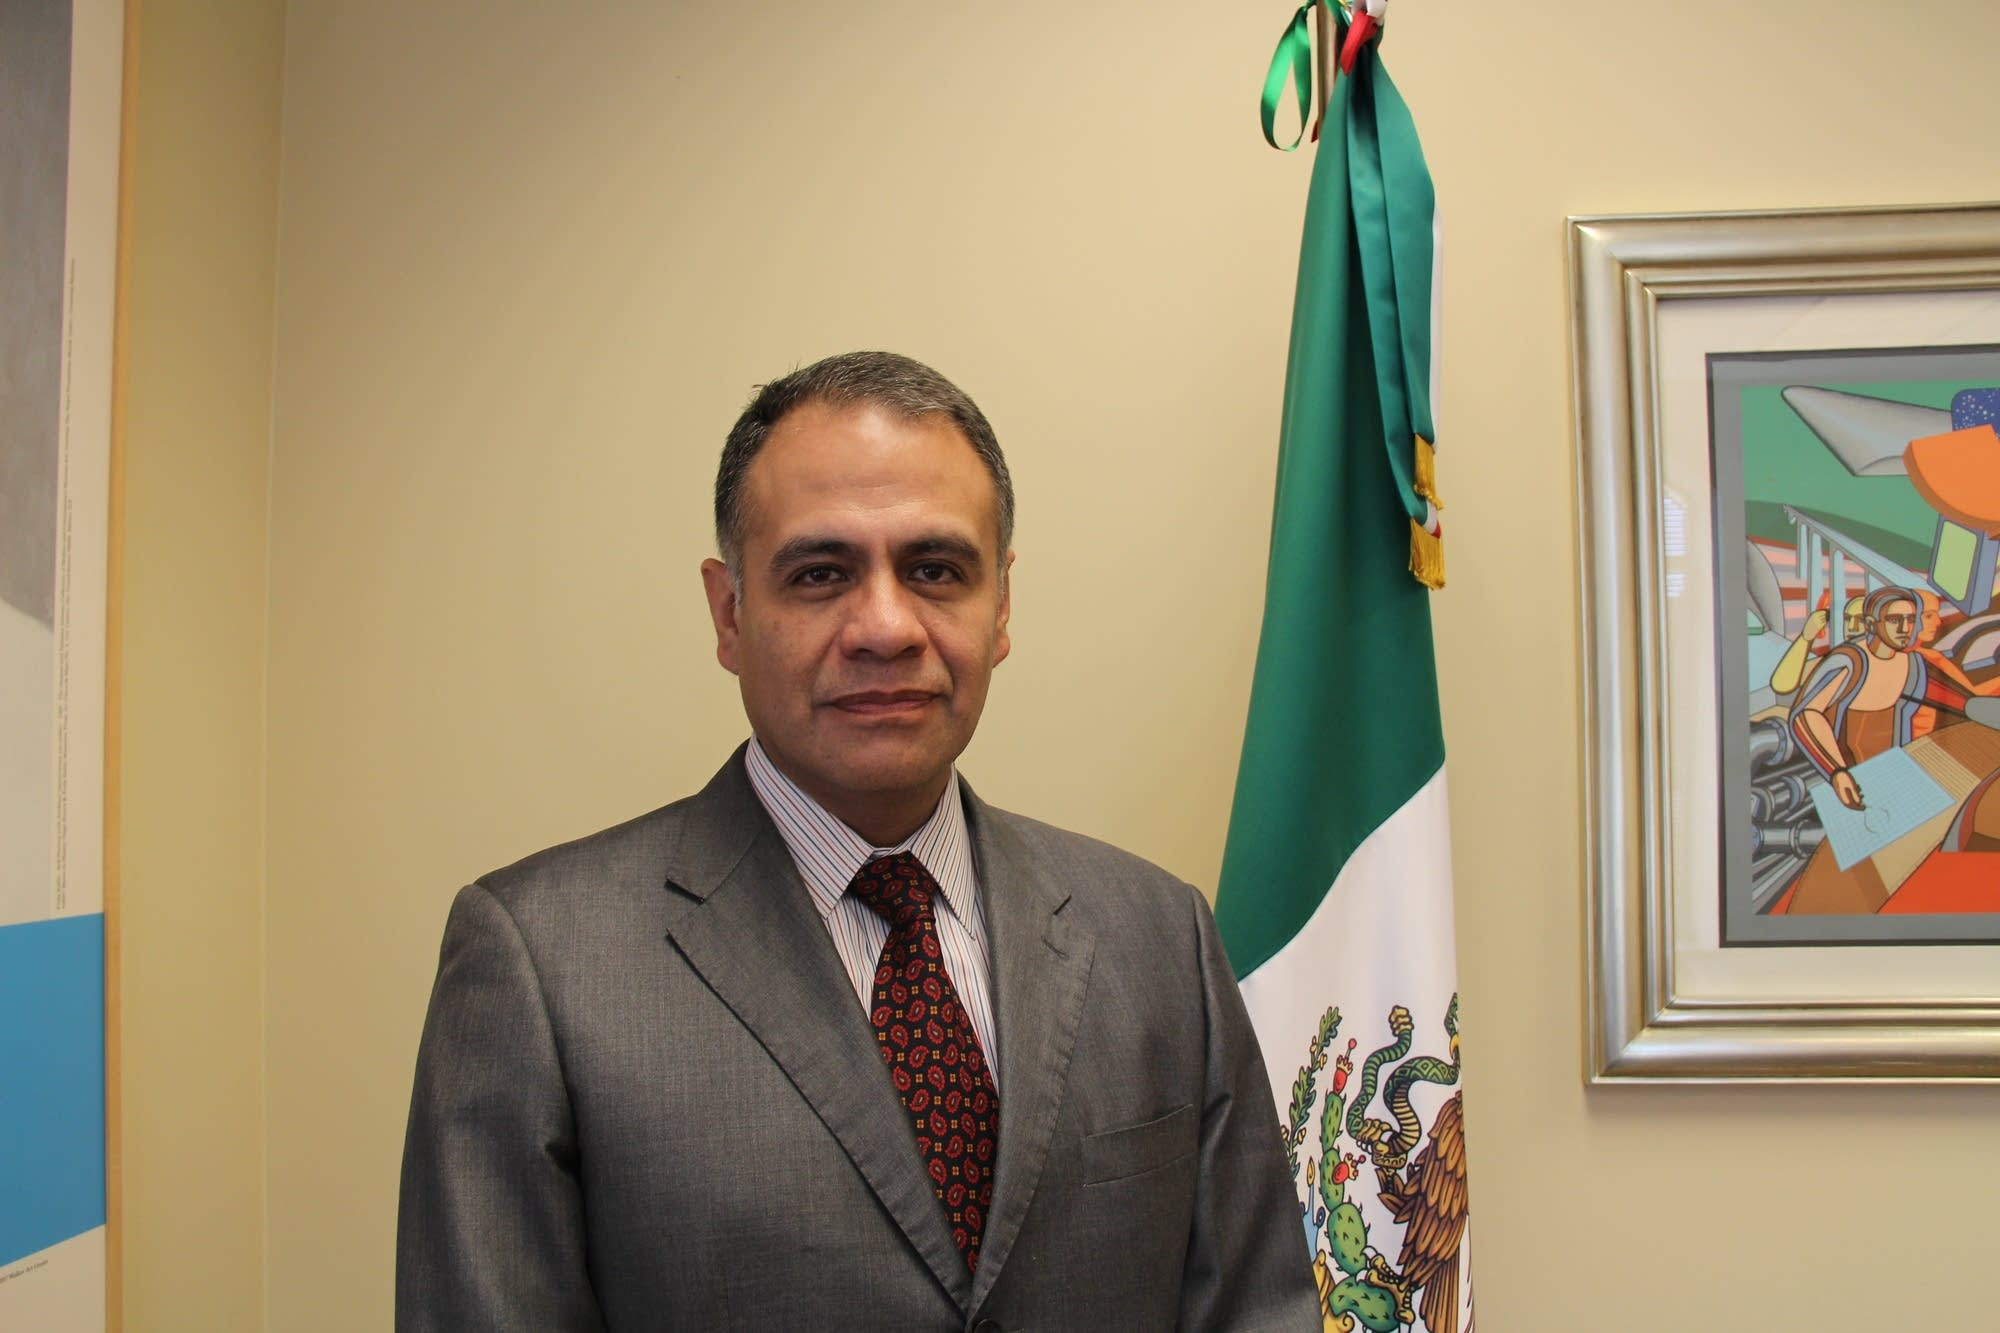 Gerardo Guerrero, the Consul of Mexico in St. Paul.